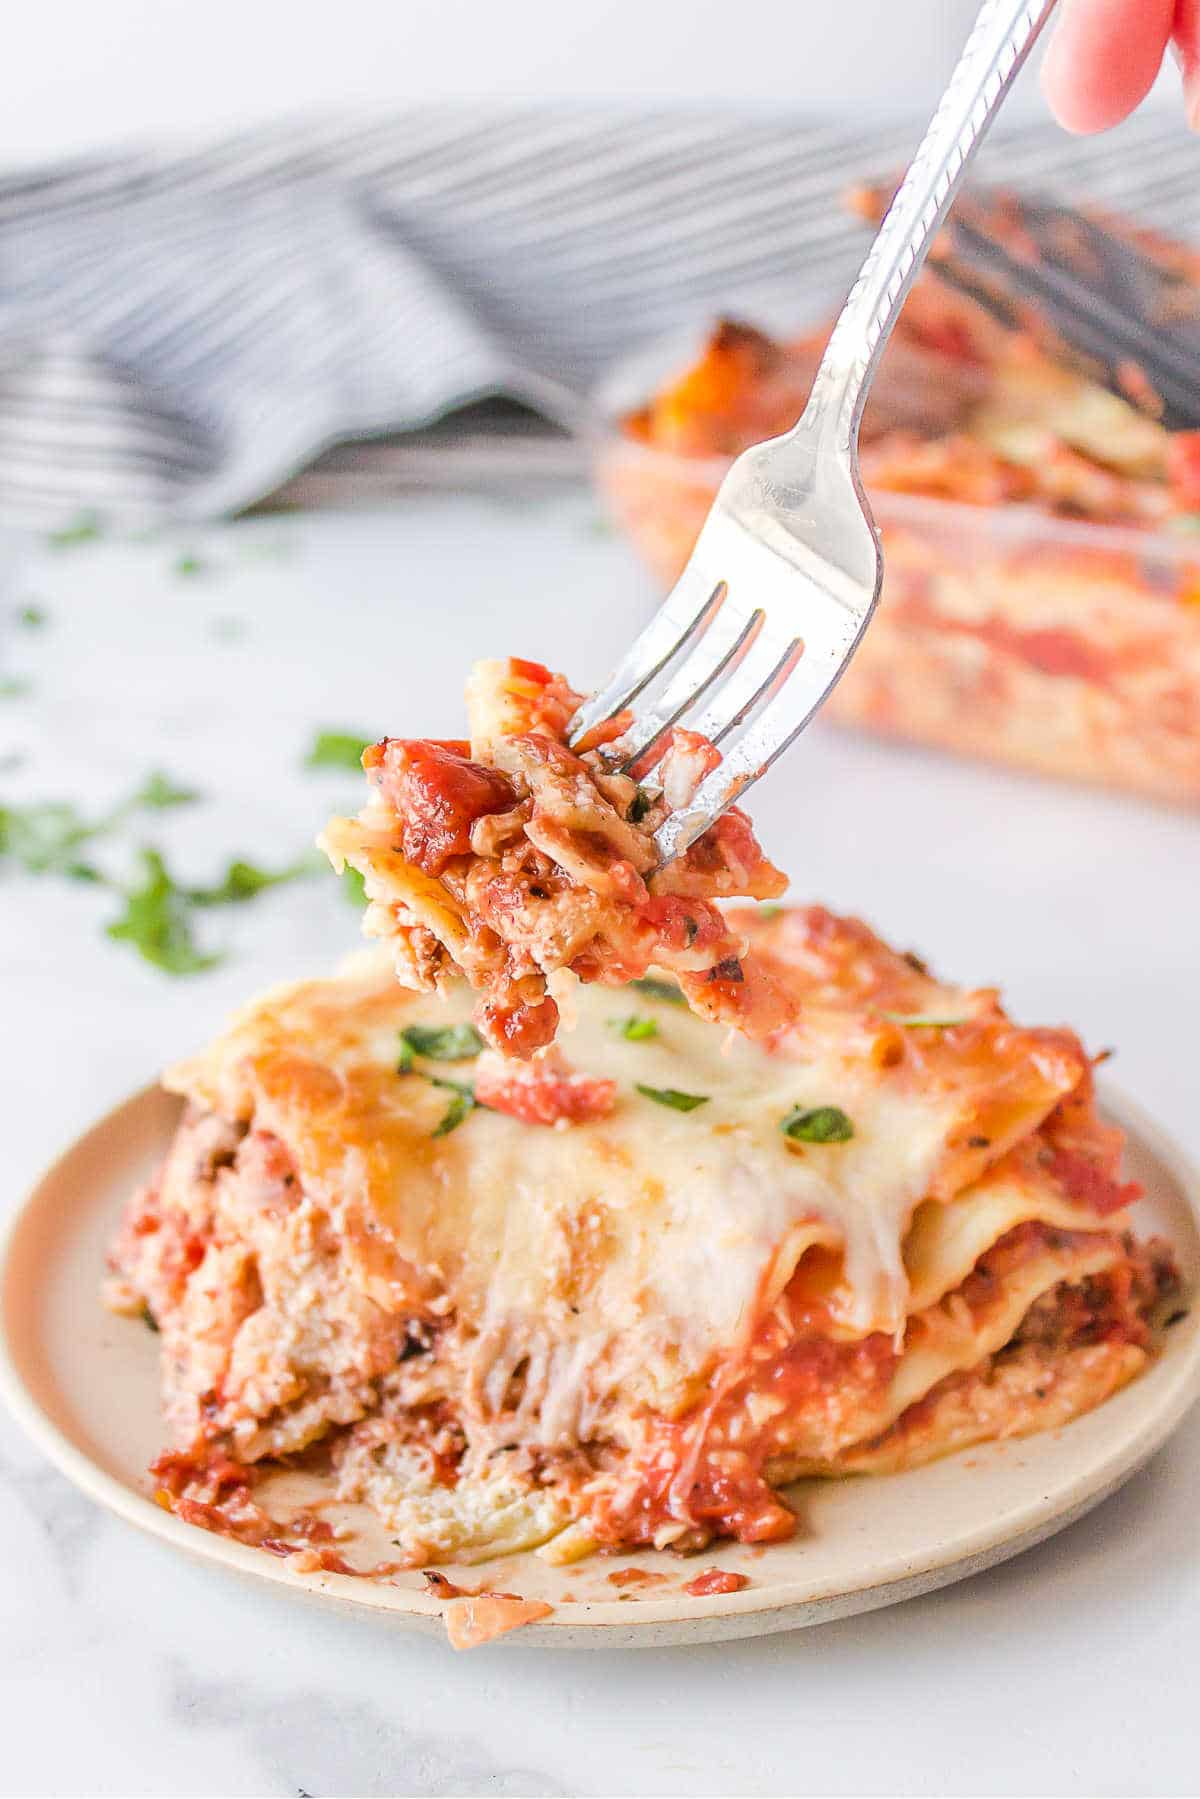 Fork taking a bite from a slice of lasagna.